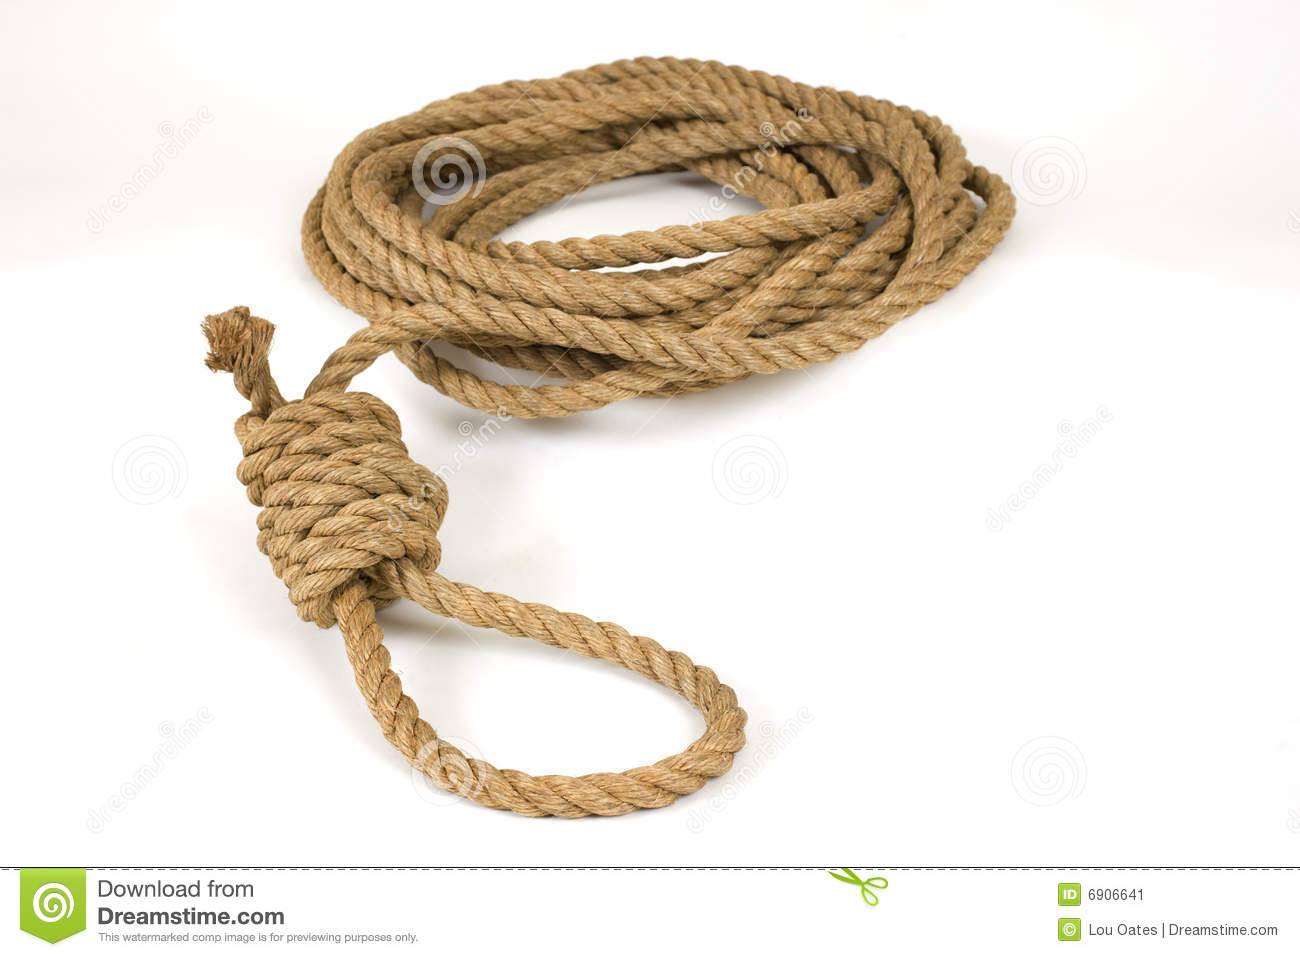 Old natural hemp rope tied into a hangman's noose on white.